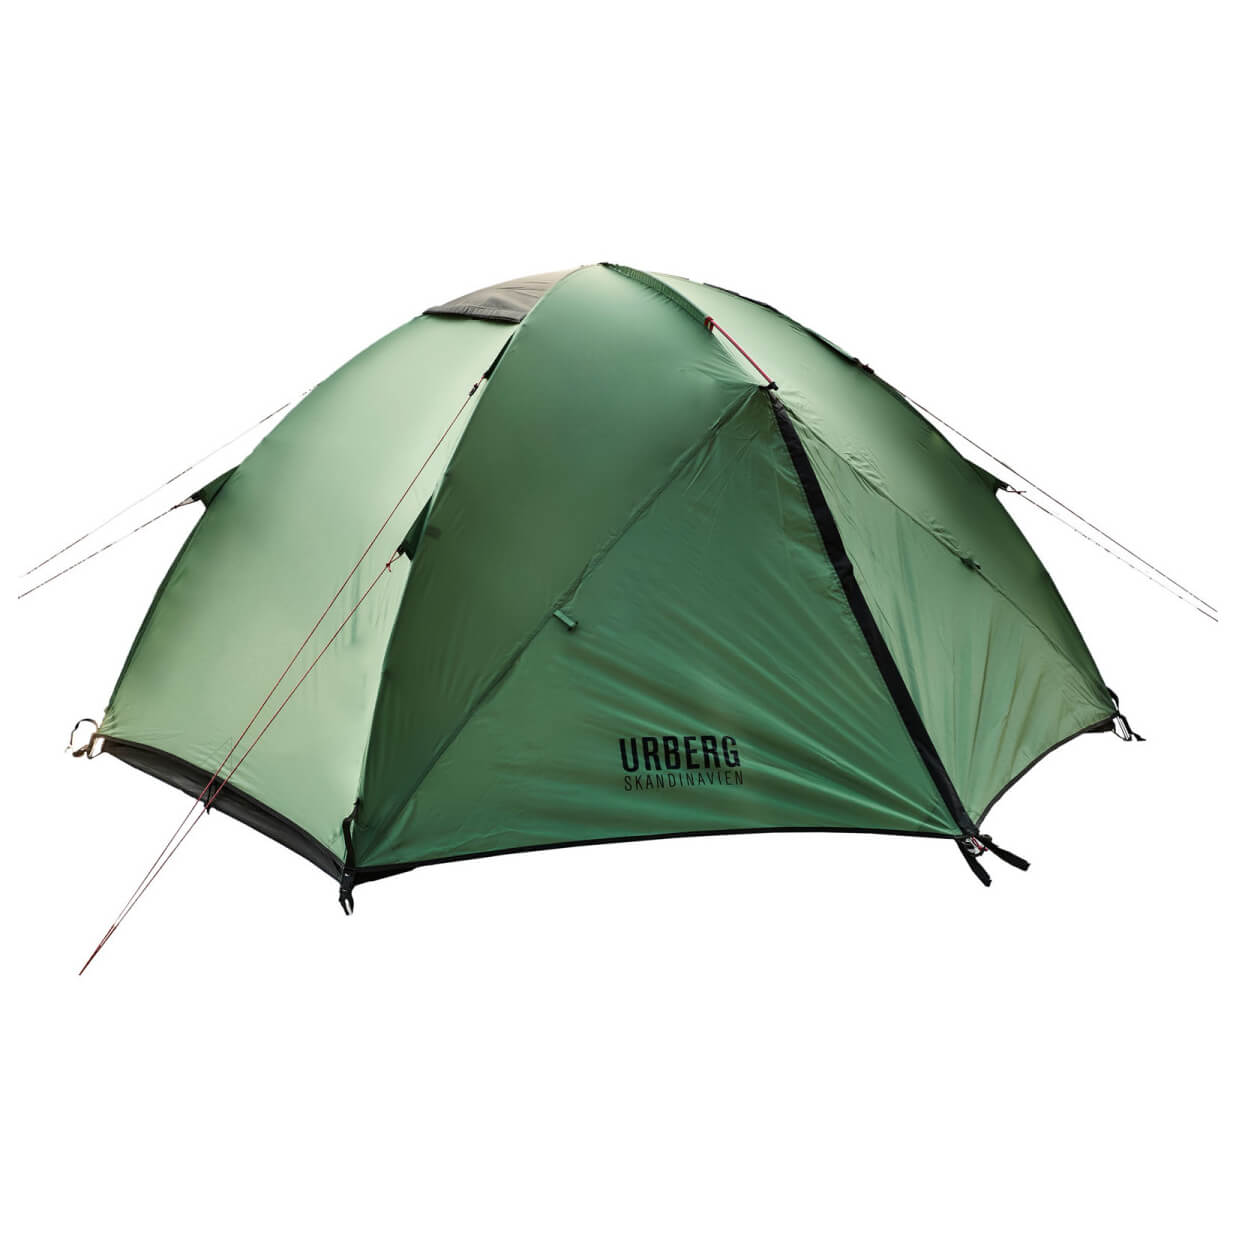 Two Person Tent : Urberg person dome tent free uk